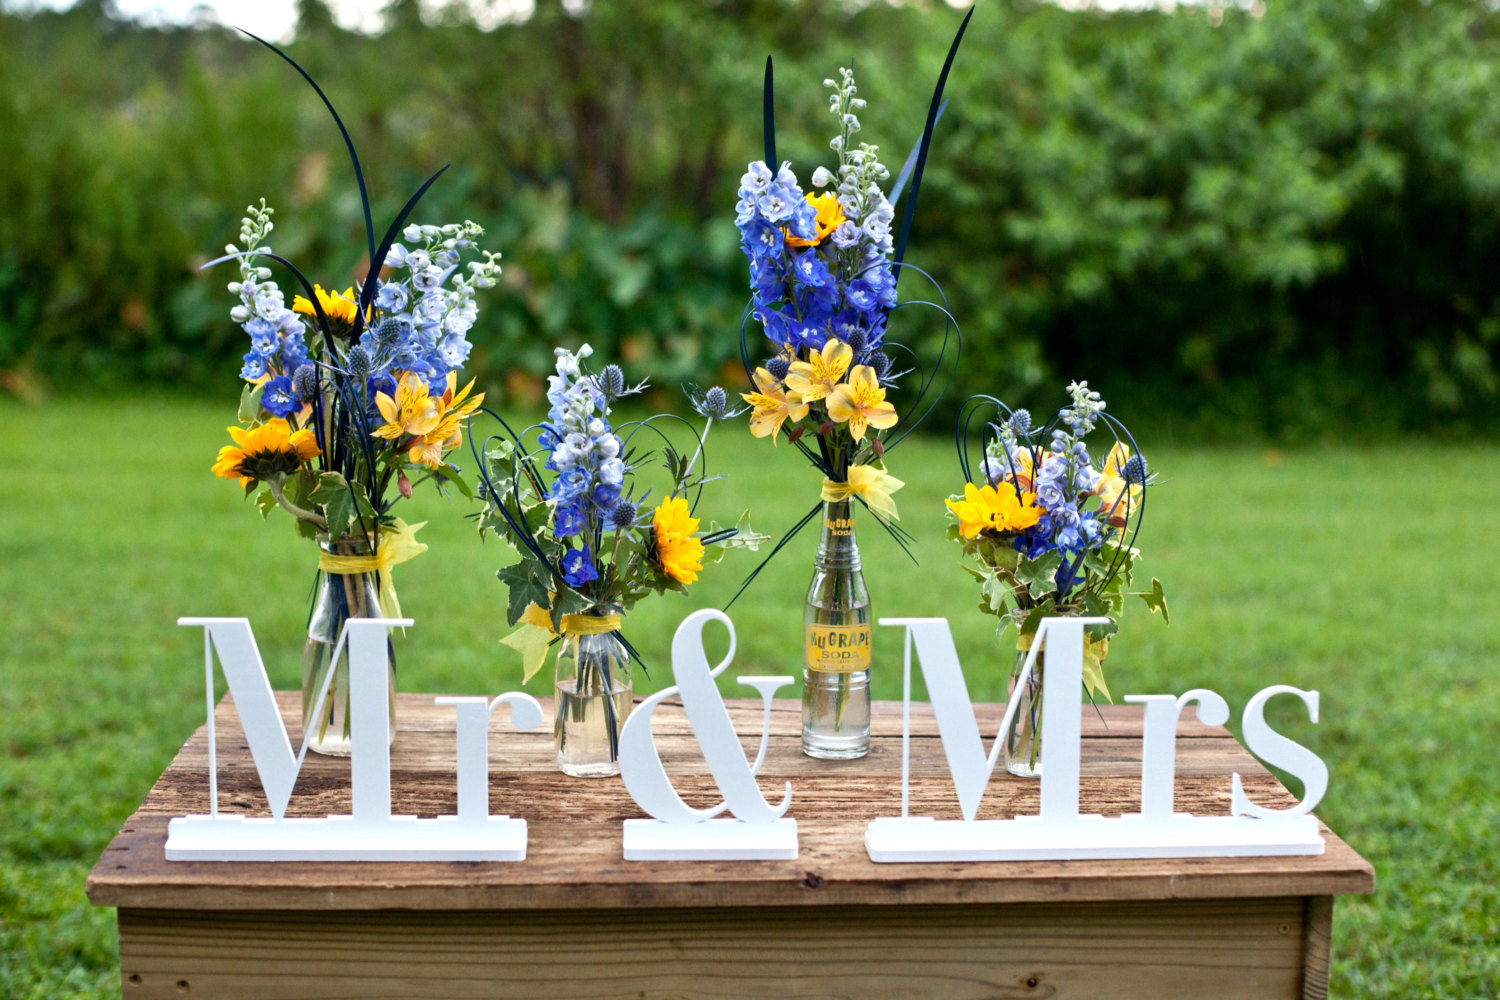 mr and mrs signage | via bride and groom chair signs http://emmalinebride.com/decor/bride-and-groom-chairs/